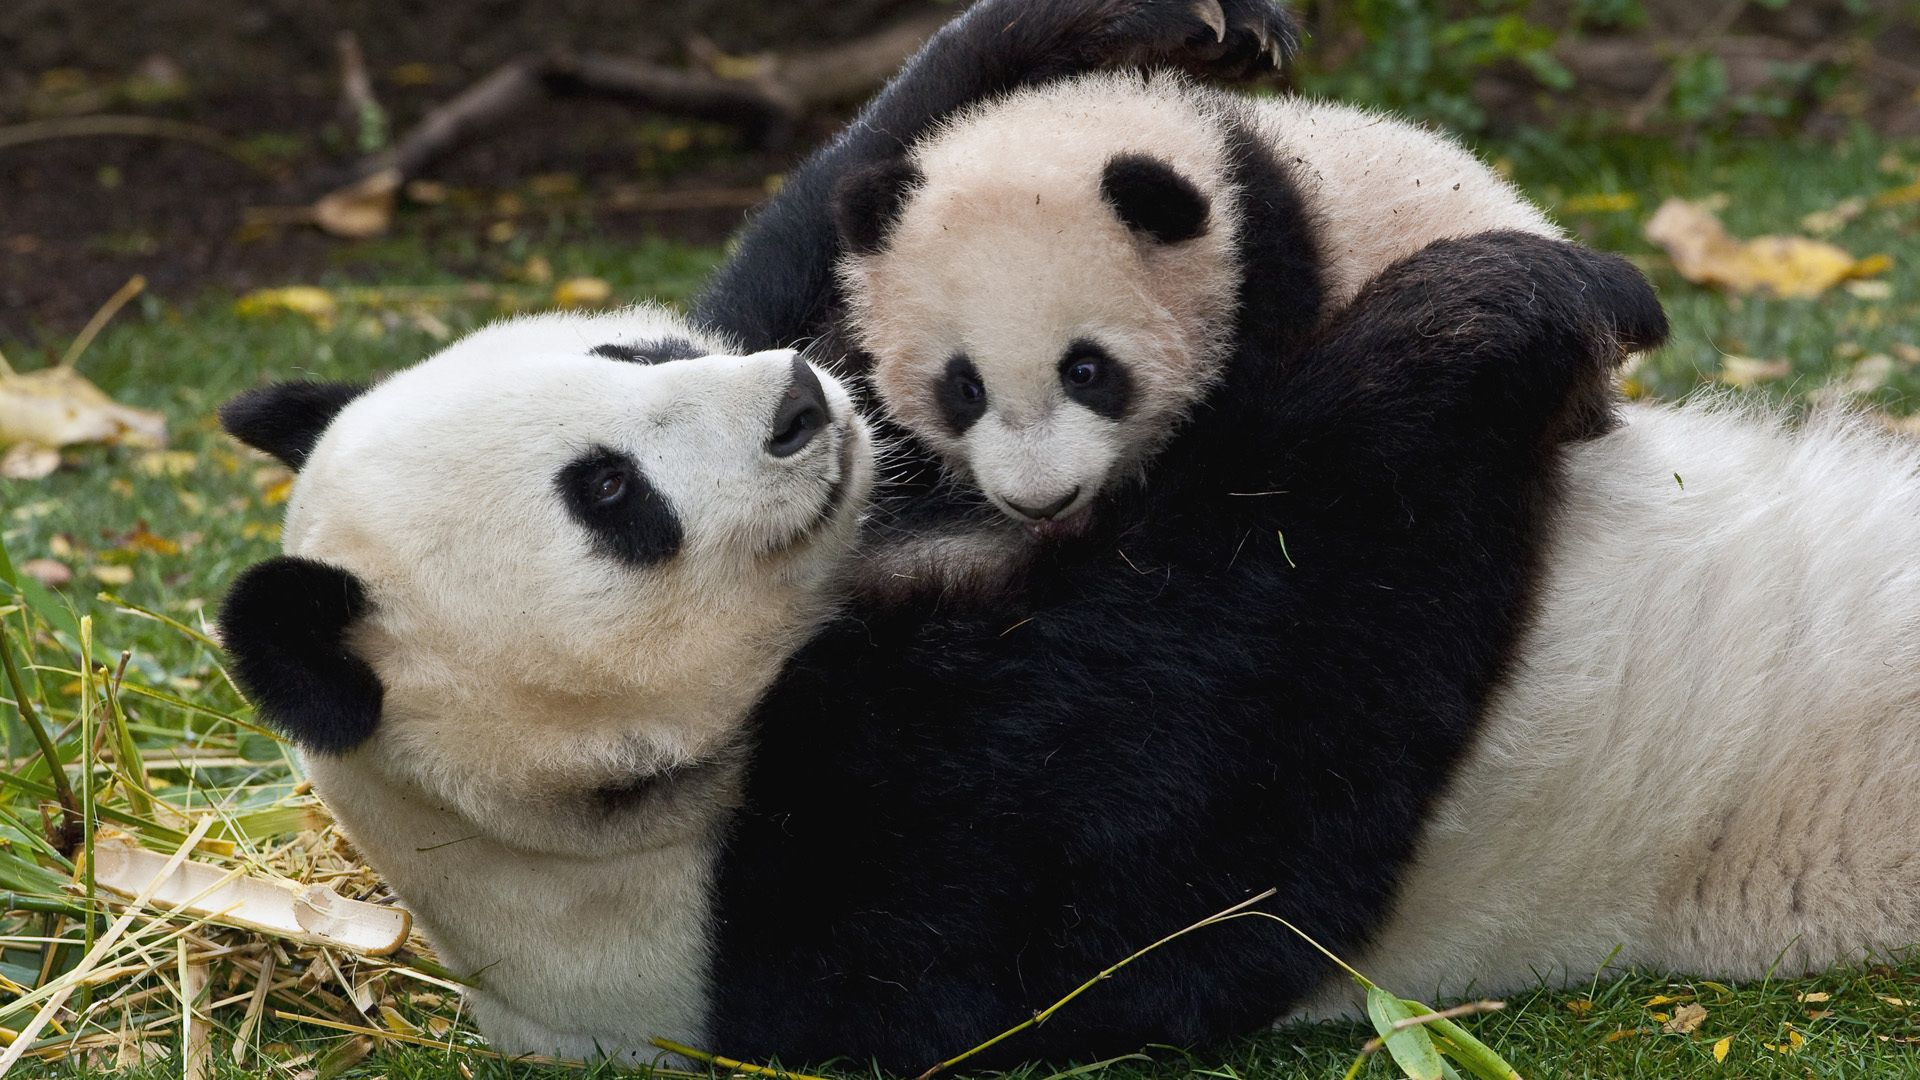 86079 download wallpaper Animals, Panda, Young, Joey, Embrace, Couple, Pair, Grass, Play screensavers and pictures for free